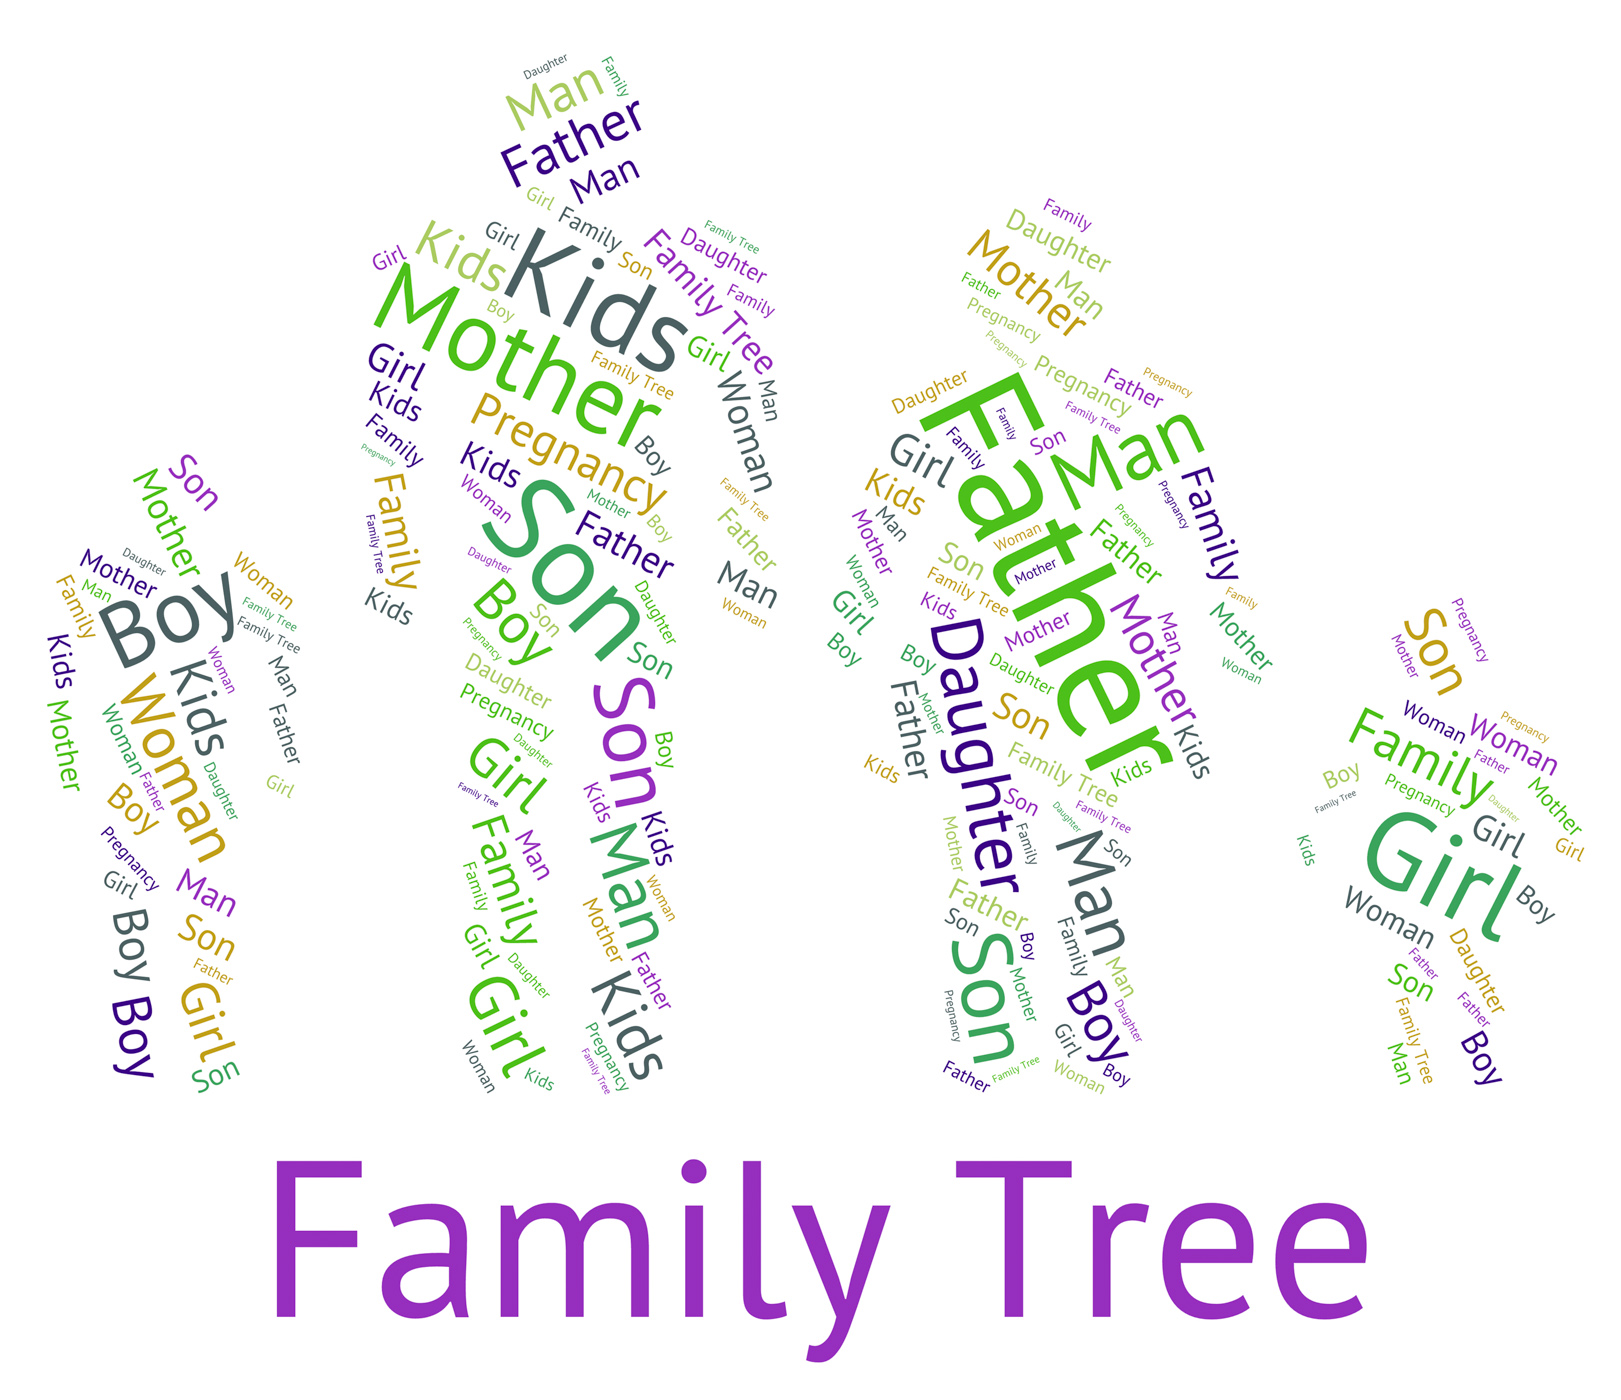 free photo family tree indicates hereditary ancestry and text